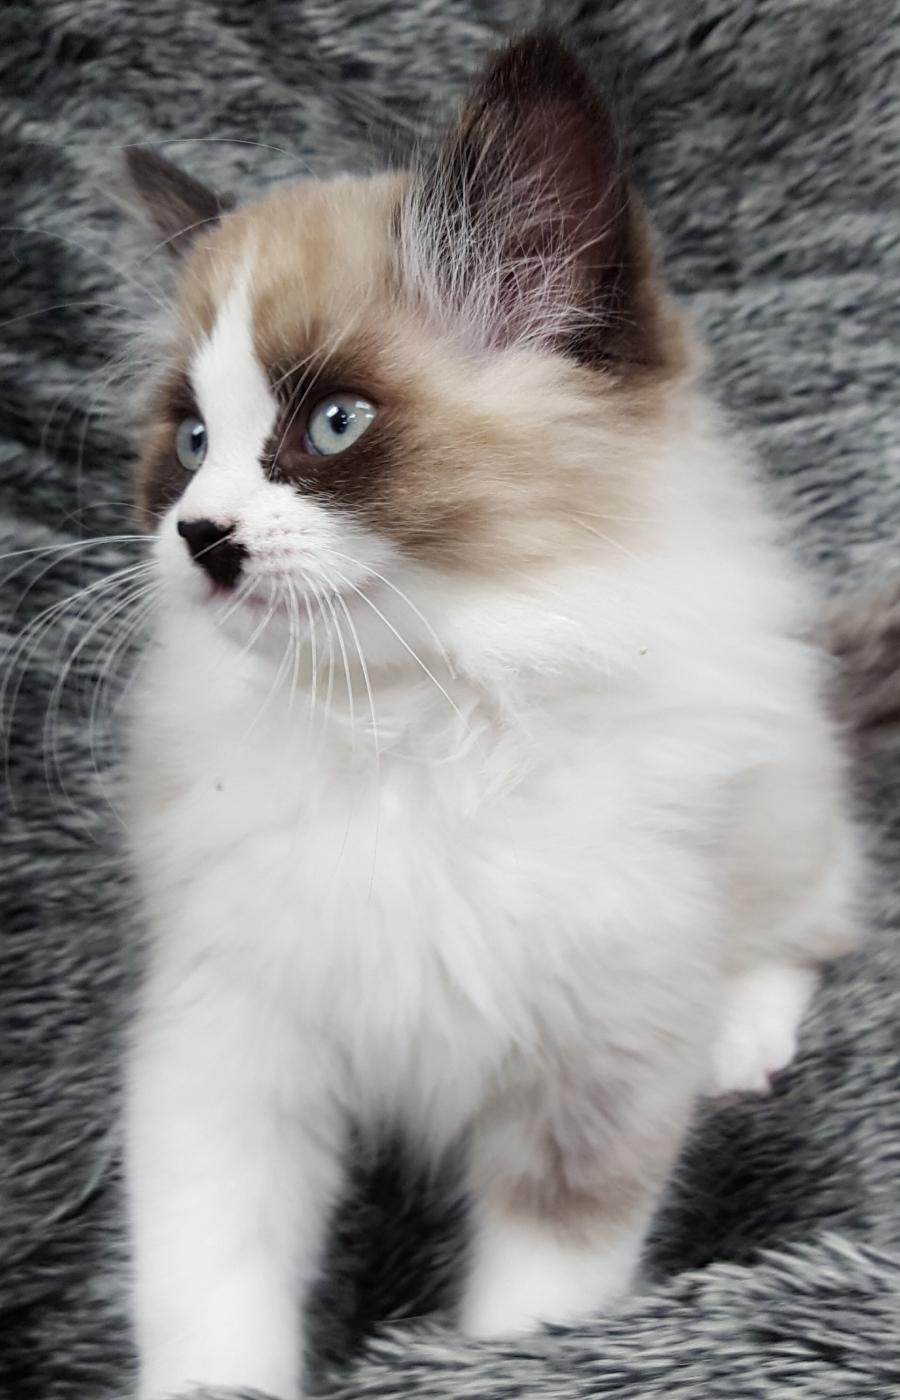 <small><del>Himalayan mix kitten</del></small><br />Happy Himalayan mix kitten